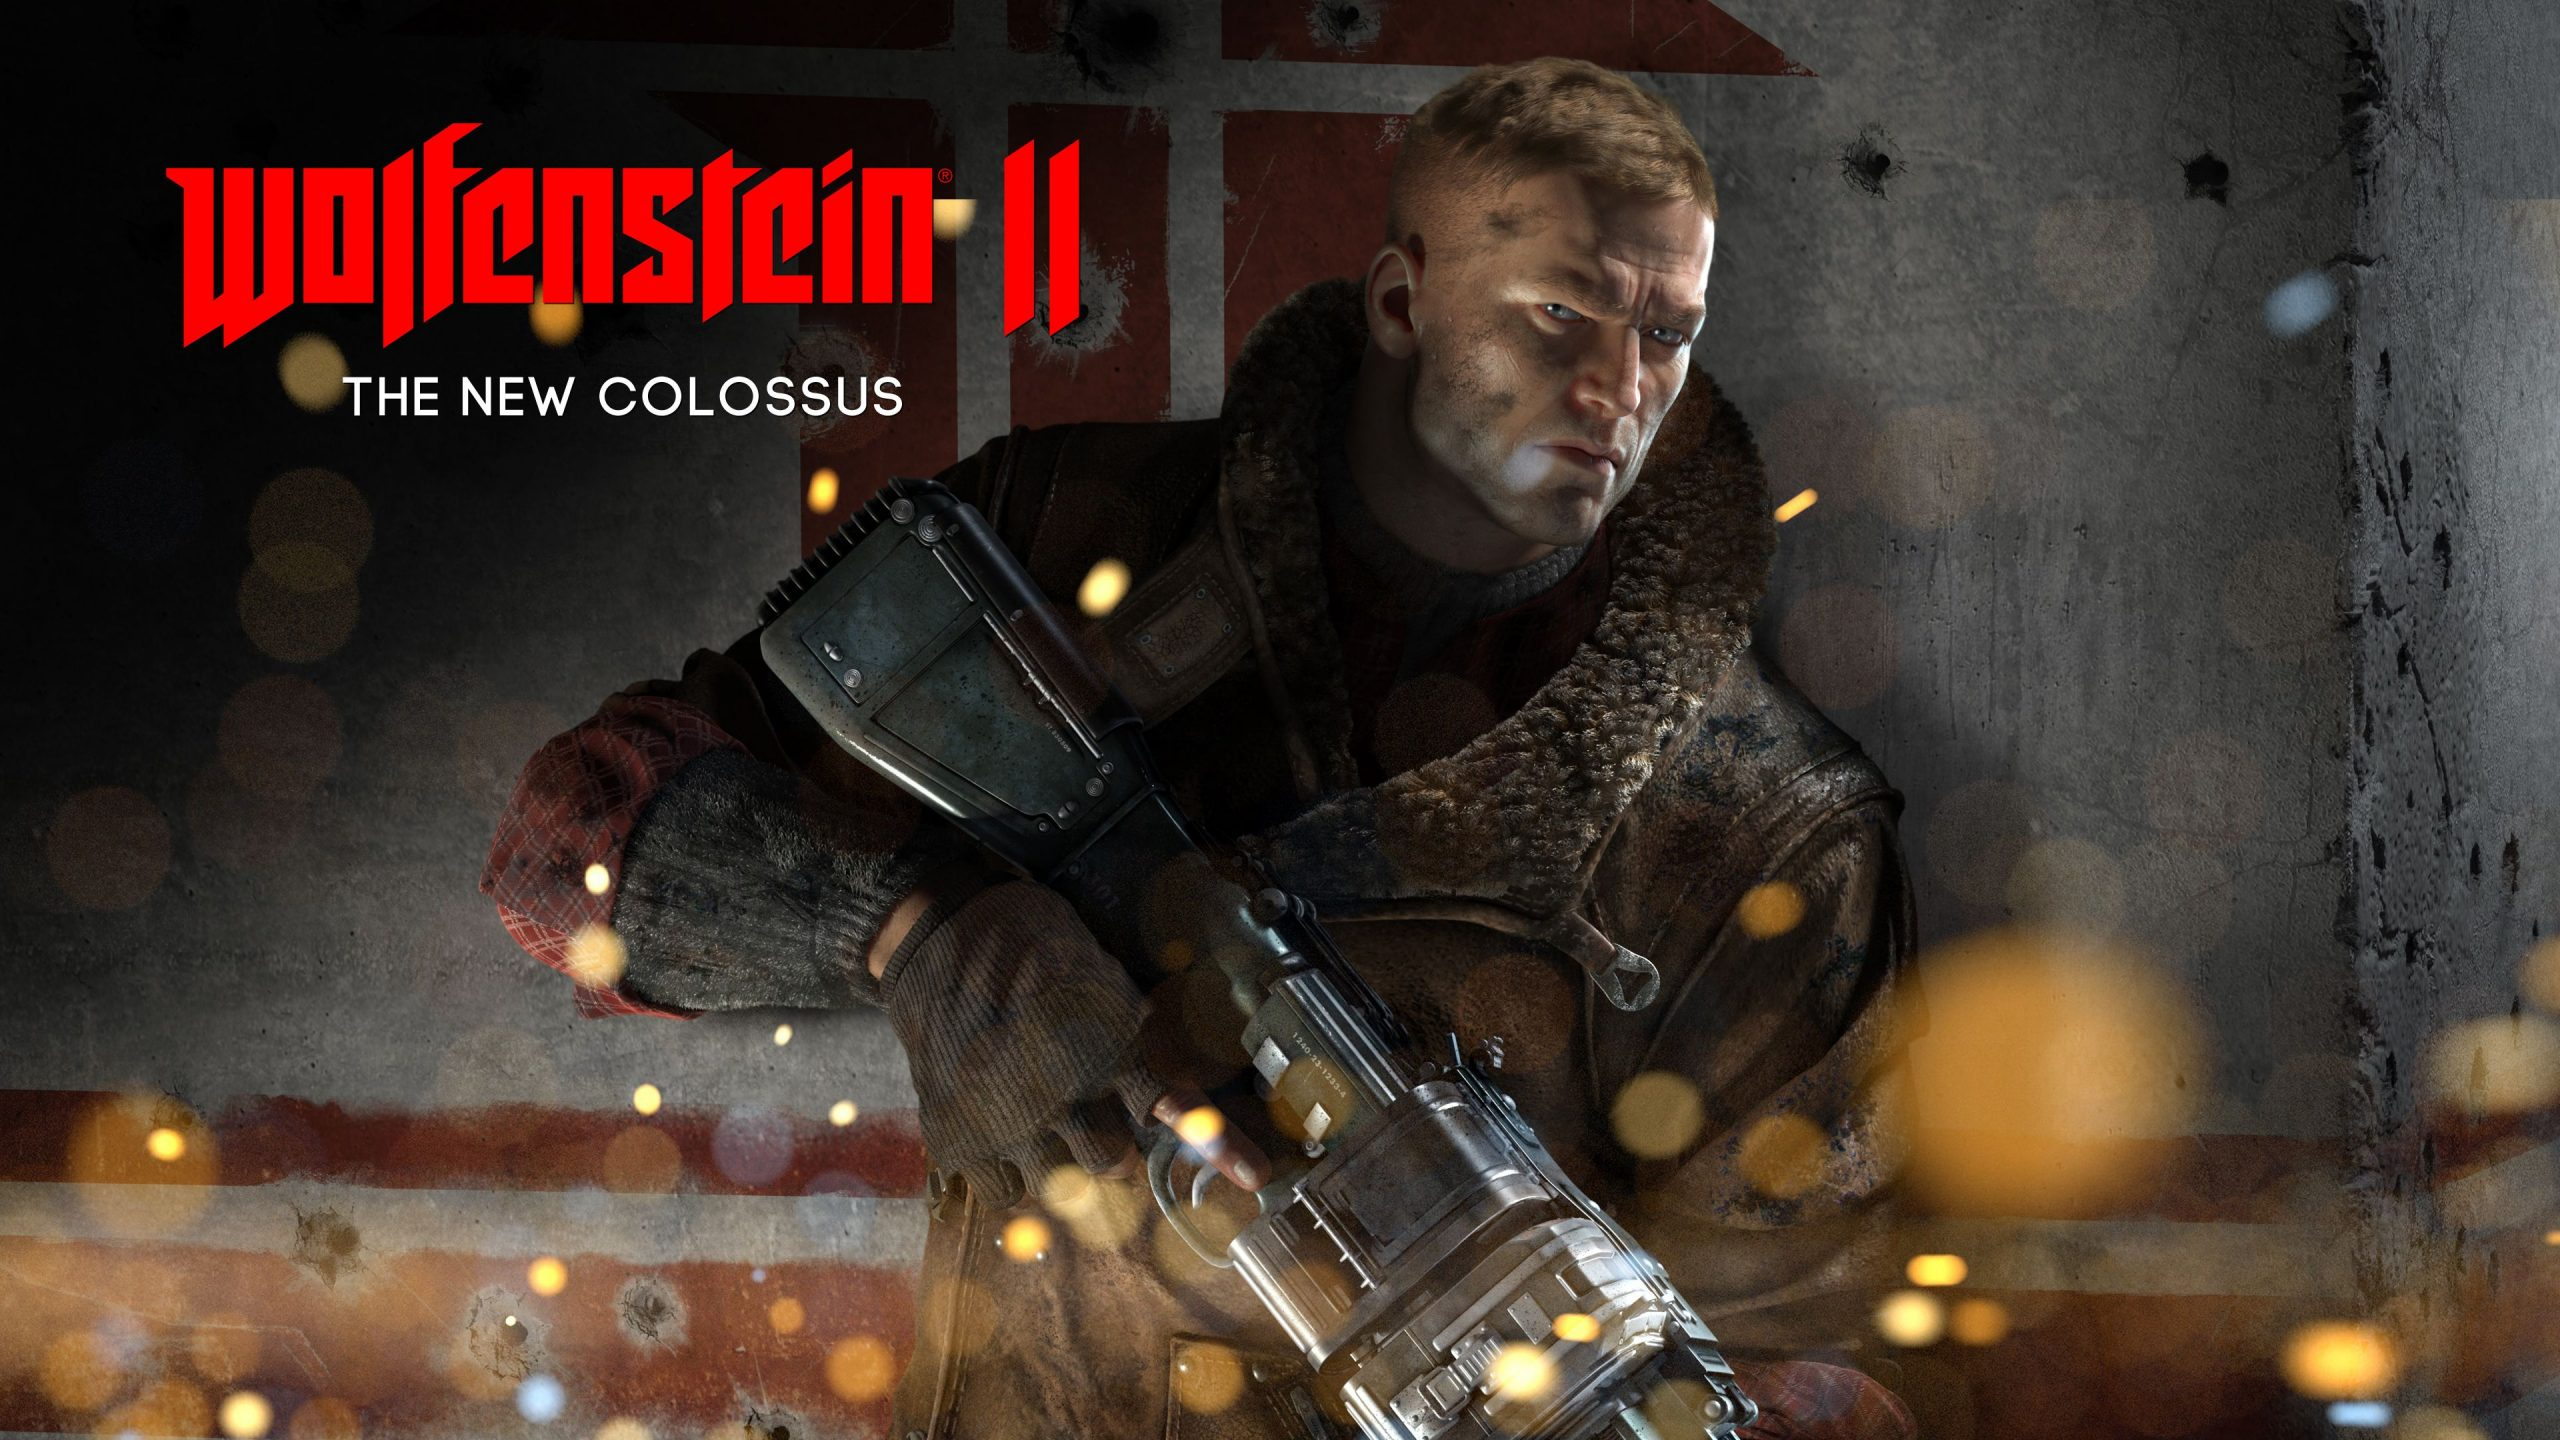 Wolfenstein II 2: The New Colossus CD Key+Crack PC Game Download